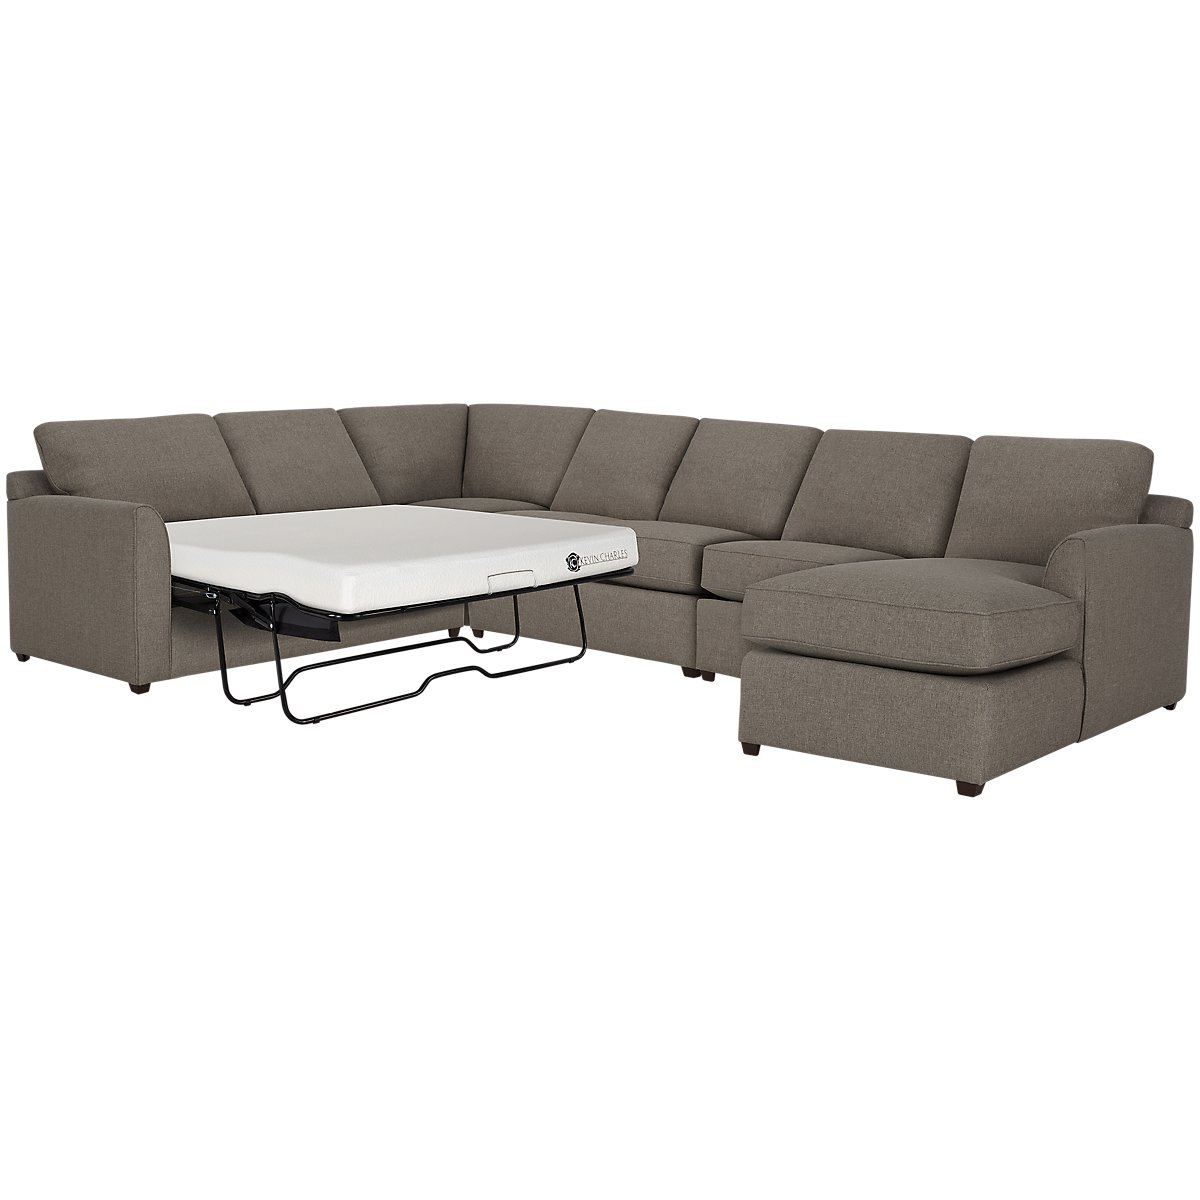 Asheville Brown Fabric Right Chaise Memory Foam Sleeper Sectional